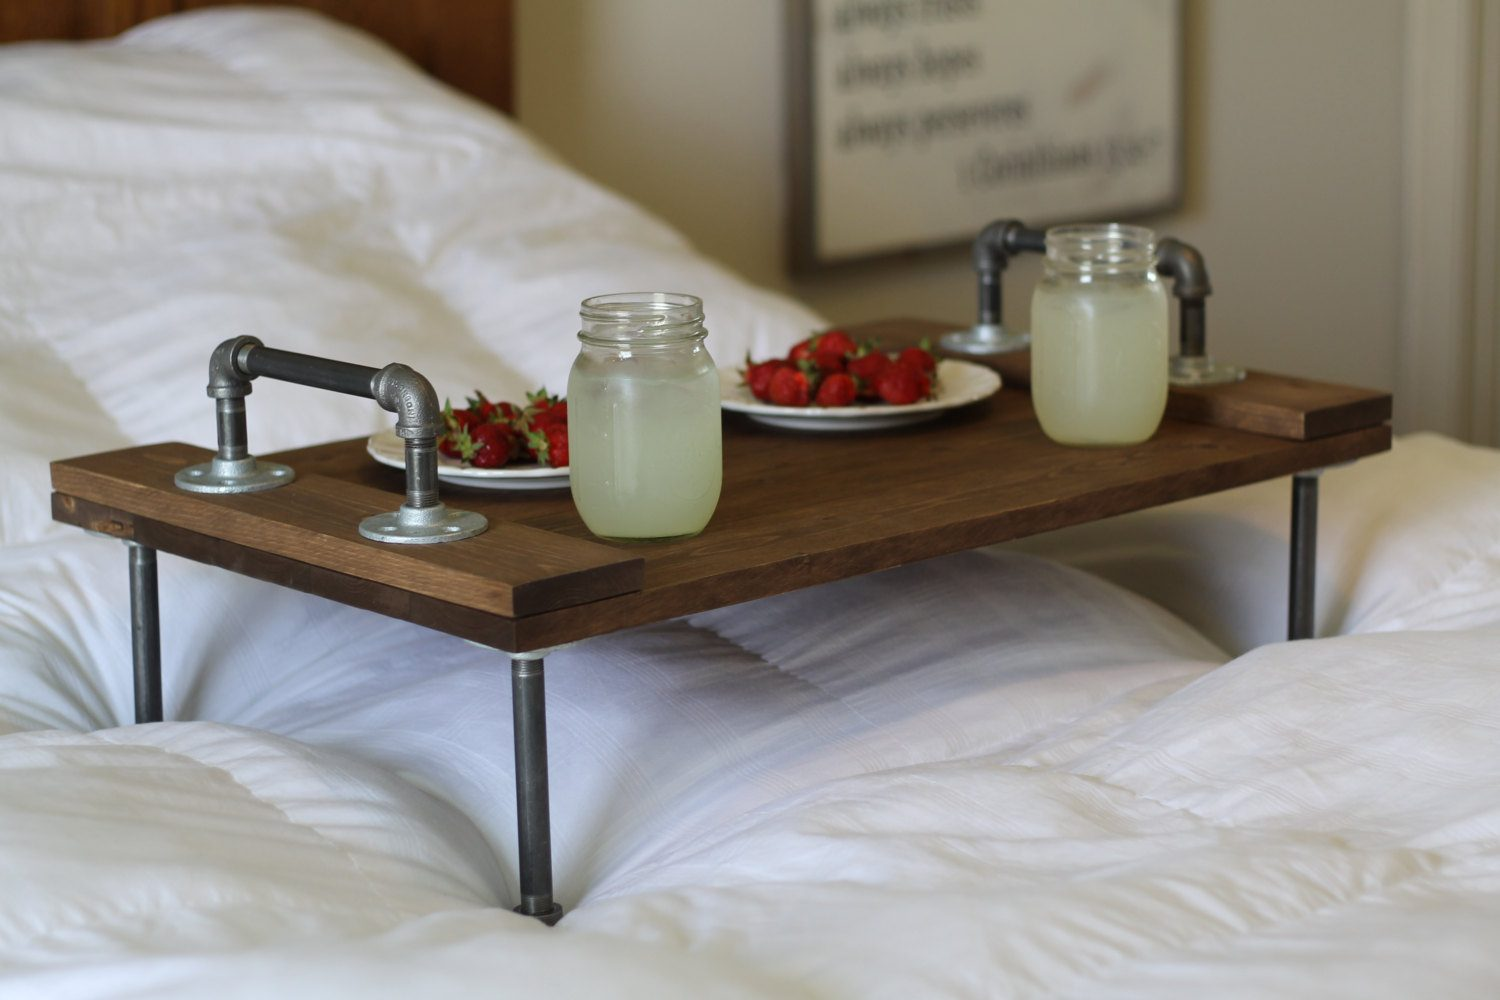 furniture-rustic-industrial-diy-breakfast-over-the-bed-tray-table-made-from-galvanized-pipe-legs-and-handle-combined-with-reclaimed-wood-tray-table-ideas-bed-tray-table-over-the-bed-tray